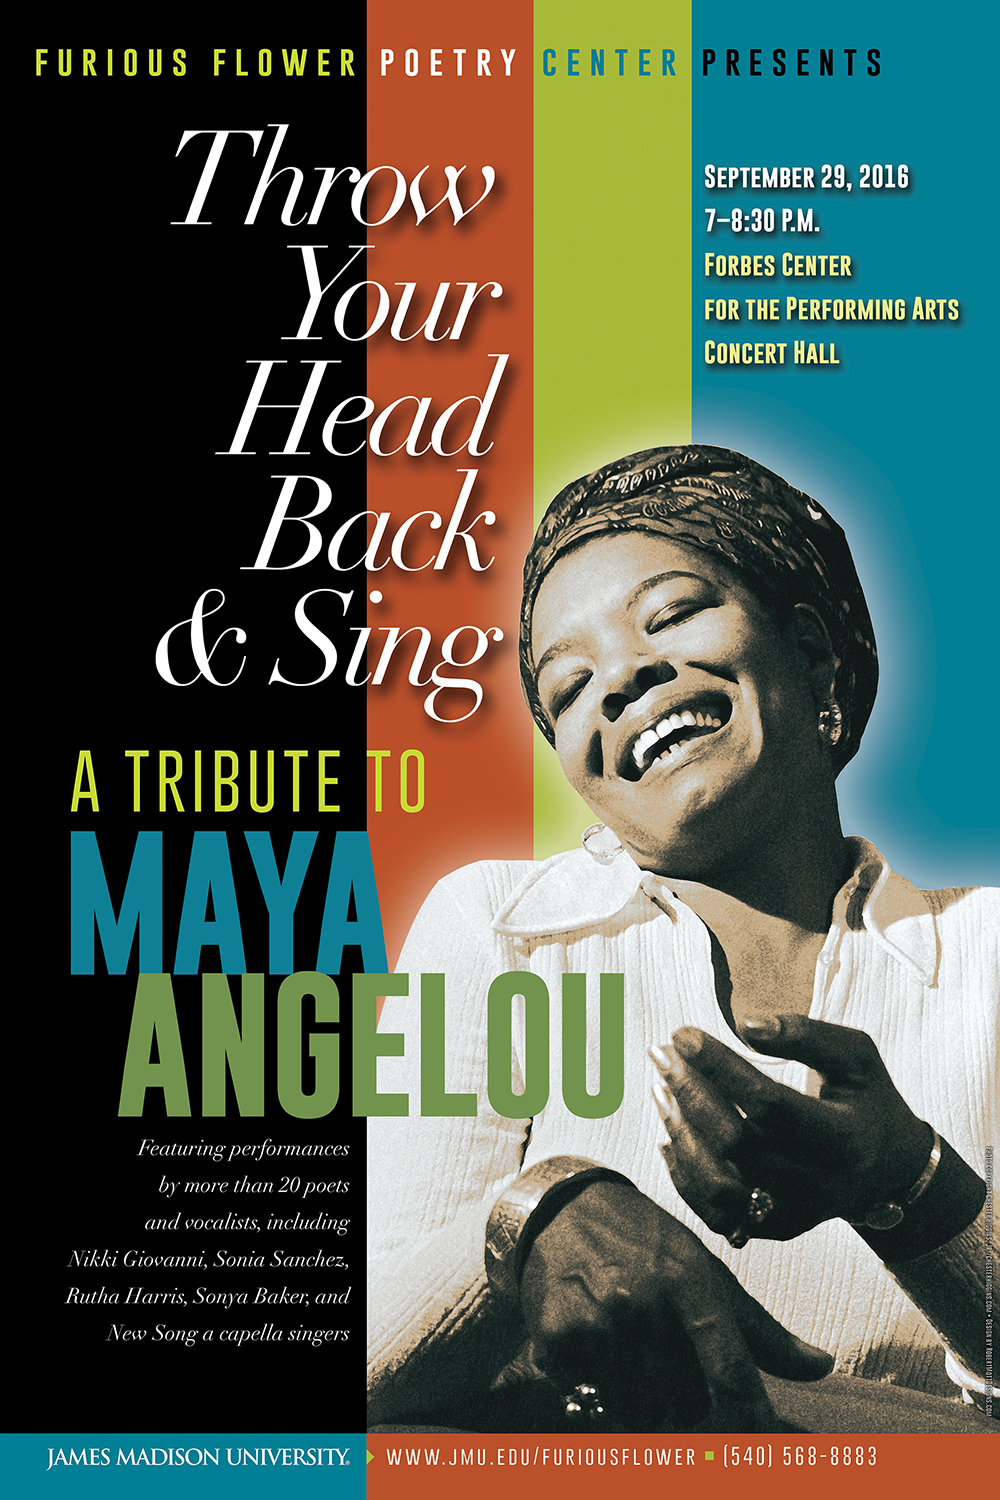 Tribute to Maya Angelou   Furious Flower Poetry Center